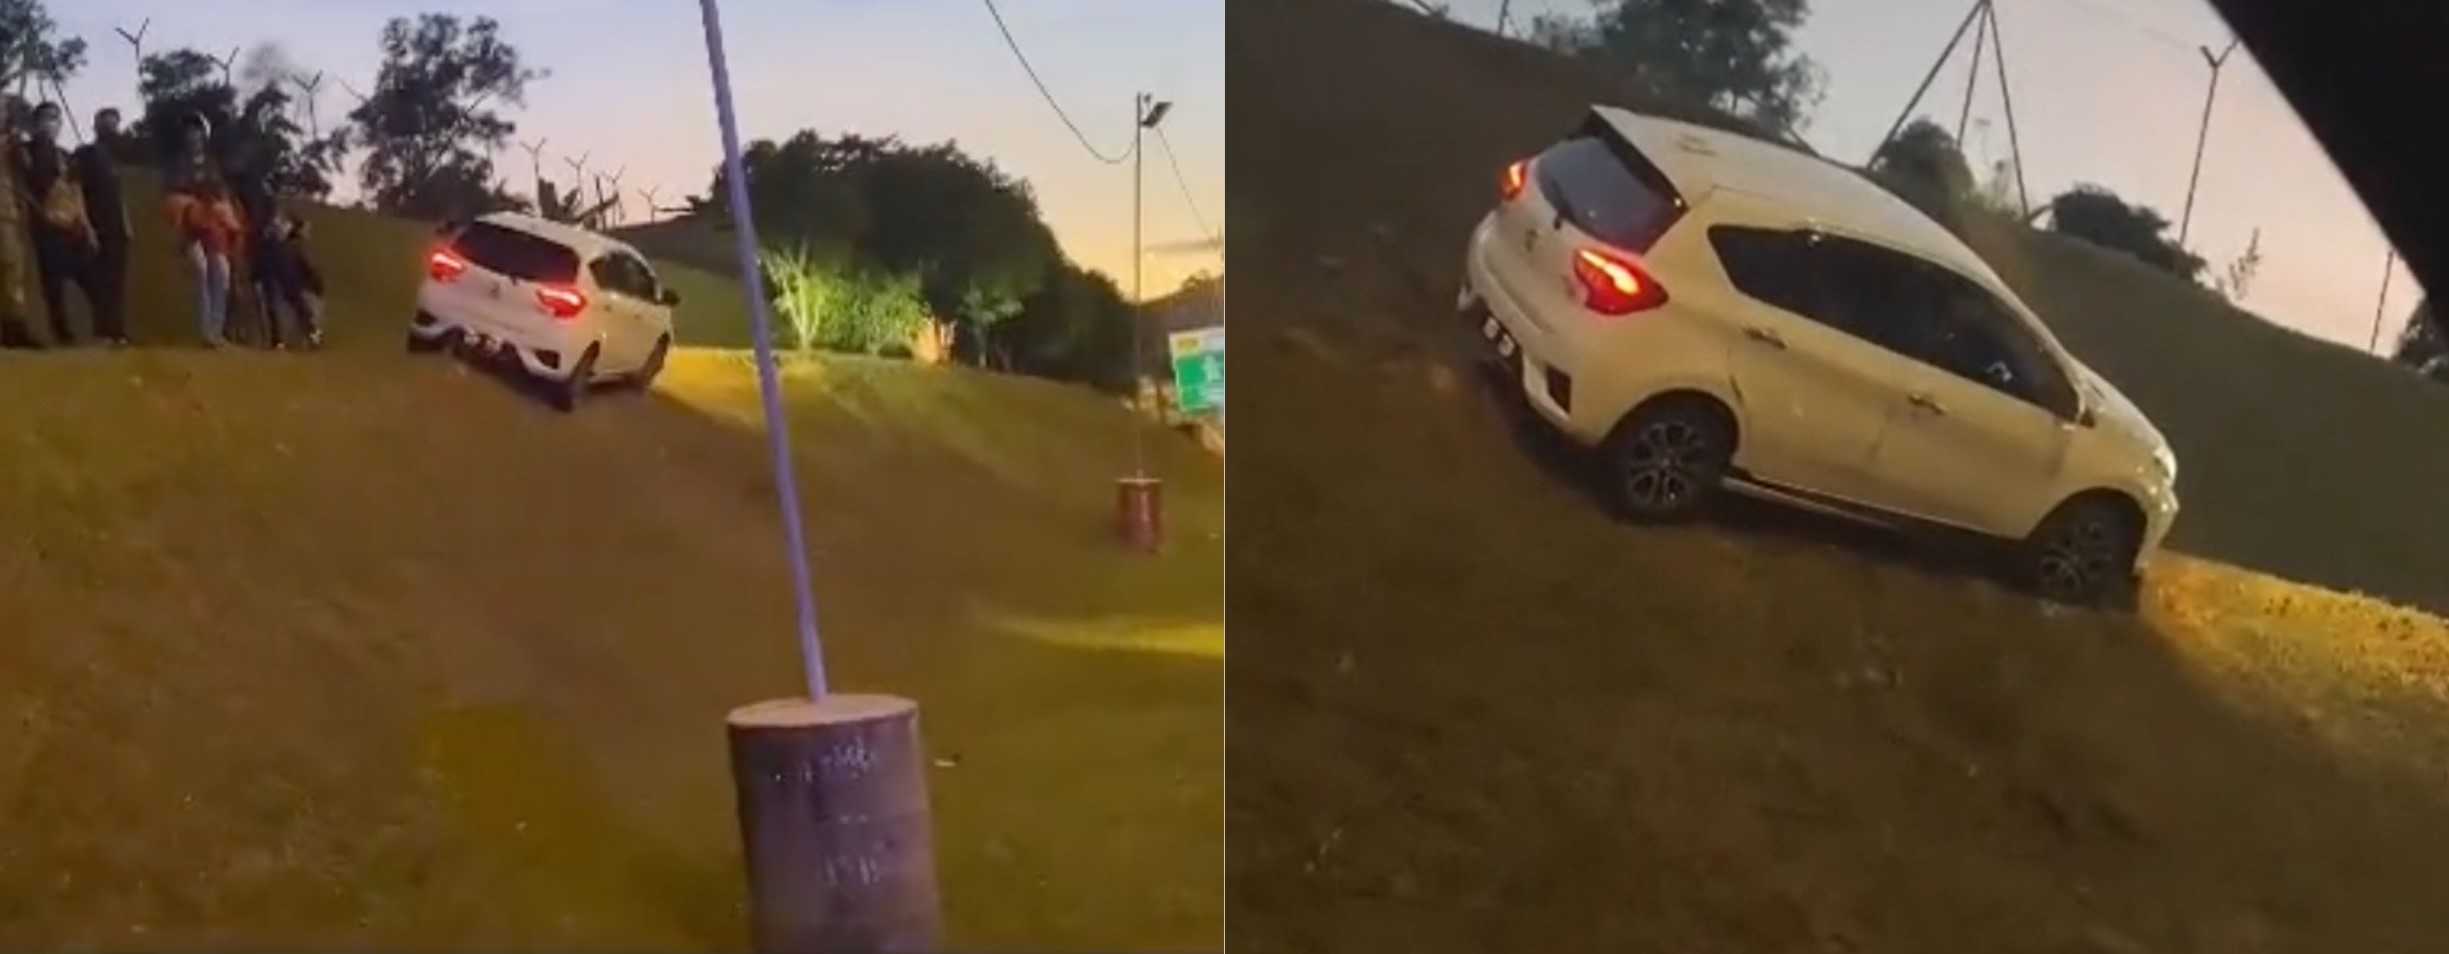 KL: Perodua Myvi Drove Off Road And Got Stuck On A Slope